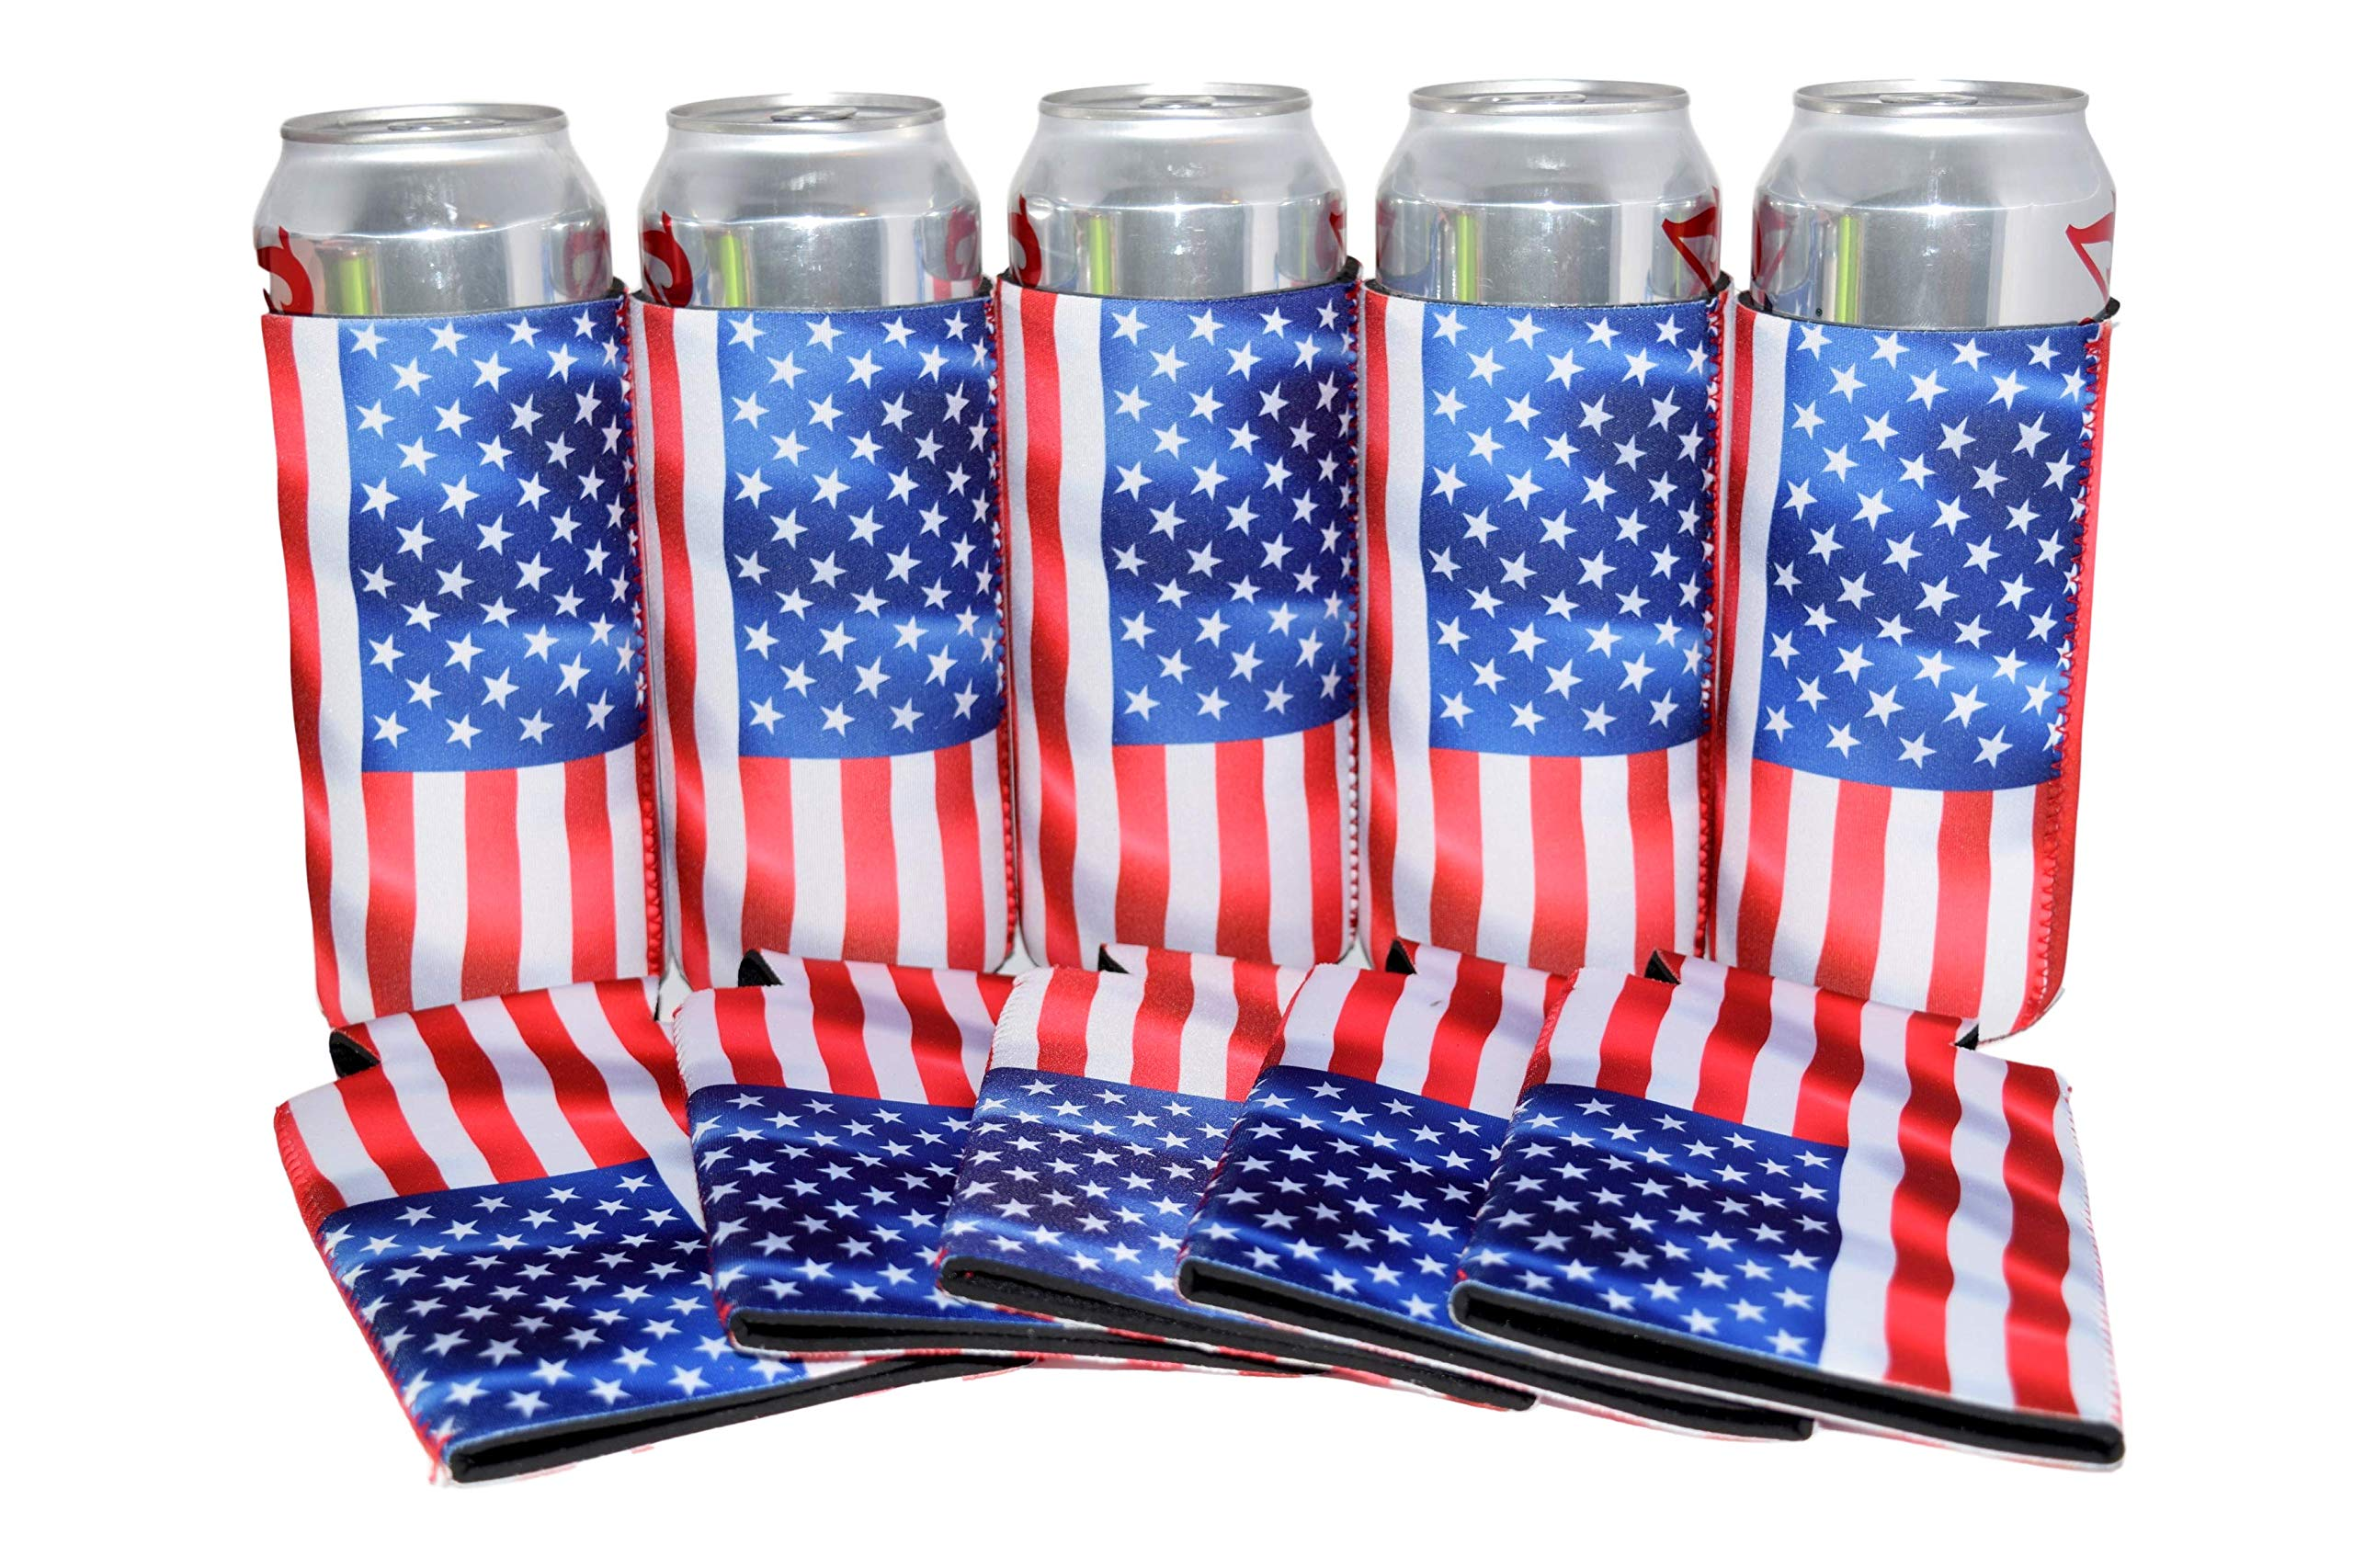 QualityPerfection US American Flag Tallboy Neoprene 24oz Beer Can Coolers Sleeves,Reversible Economy Bulk Insulation with Stitched Perfect 4 Prty Supply,Independence,BBQ,Gifts,Event (USA Flag Wind, 6)